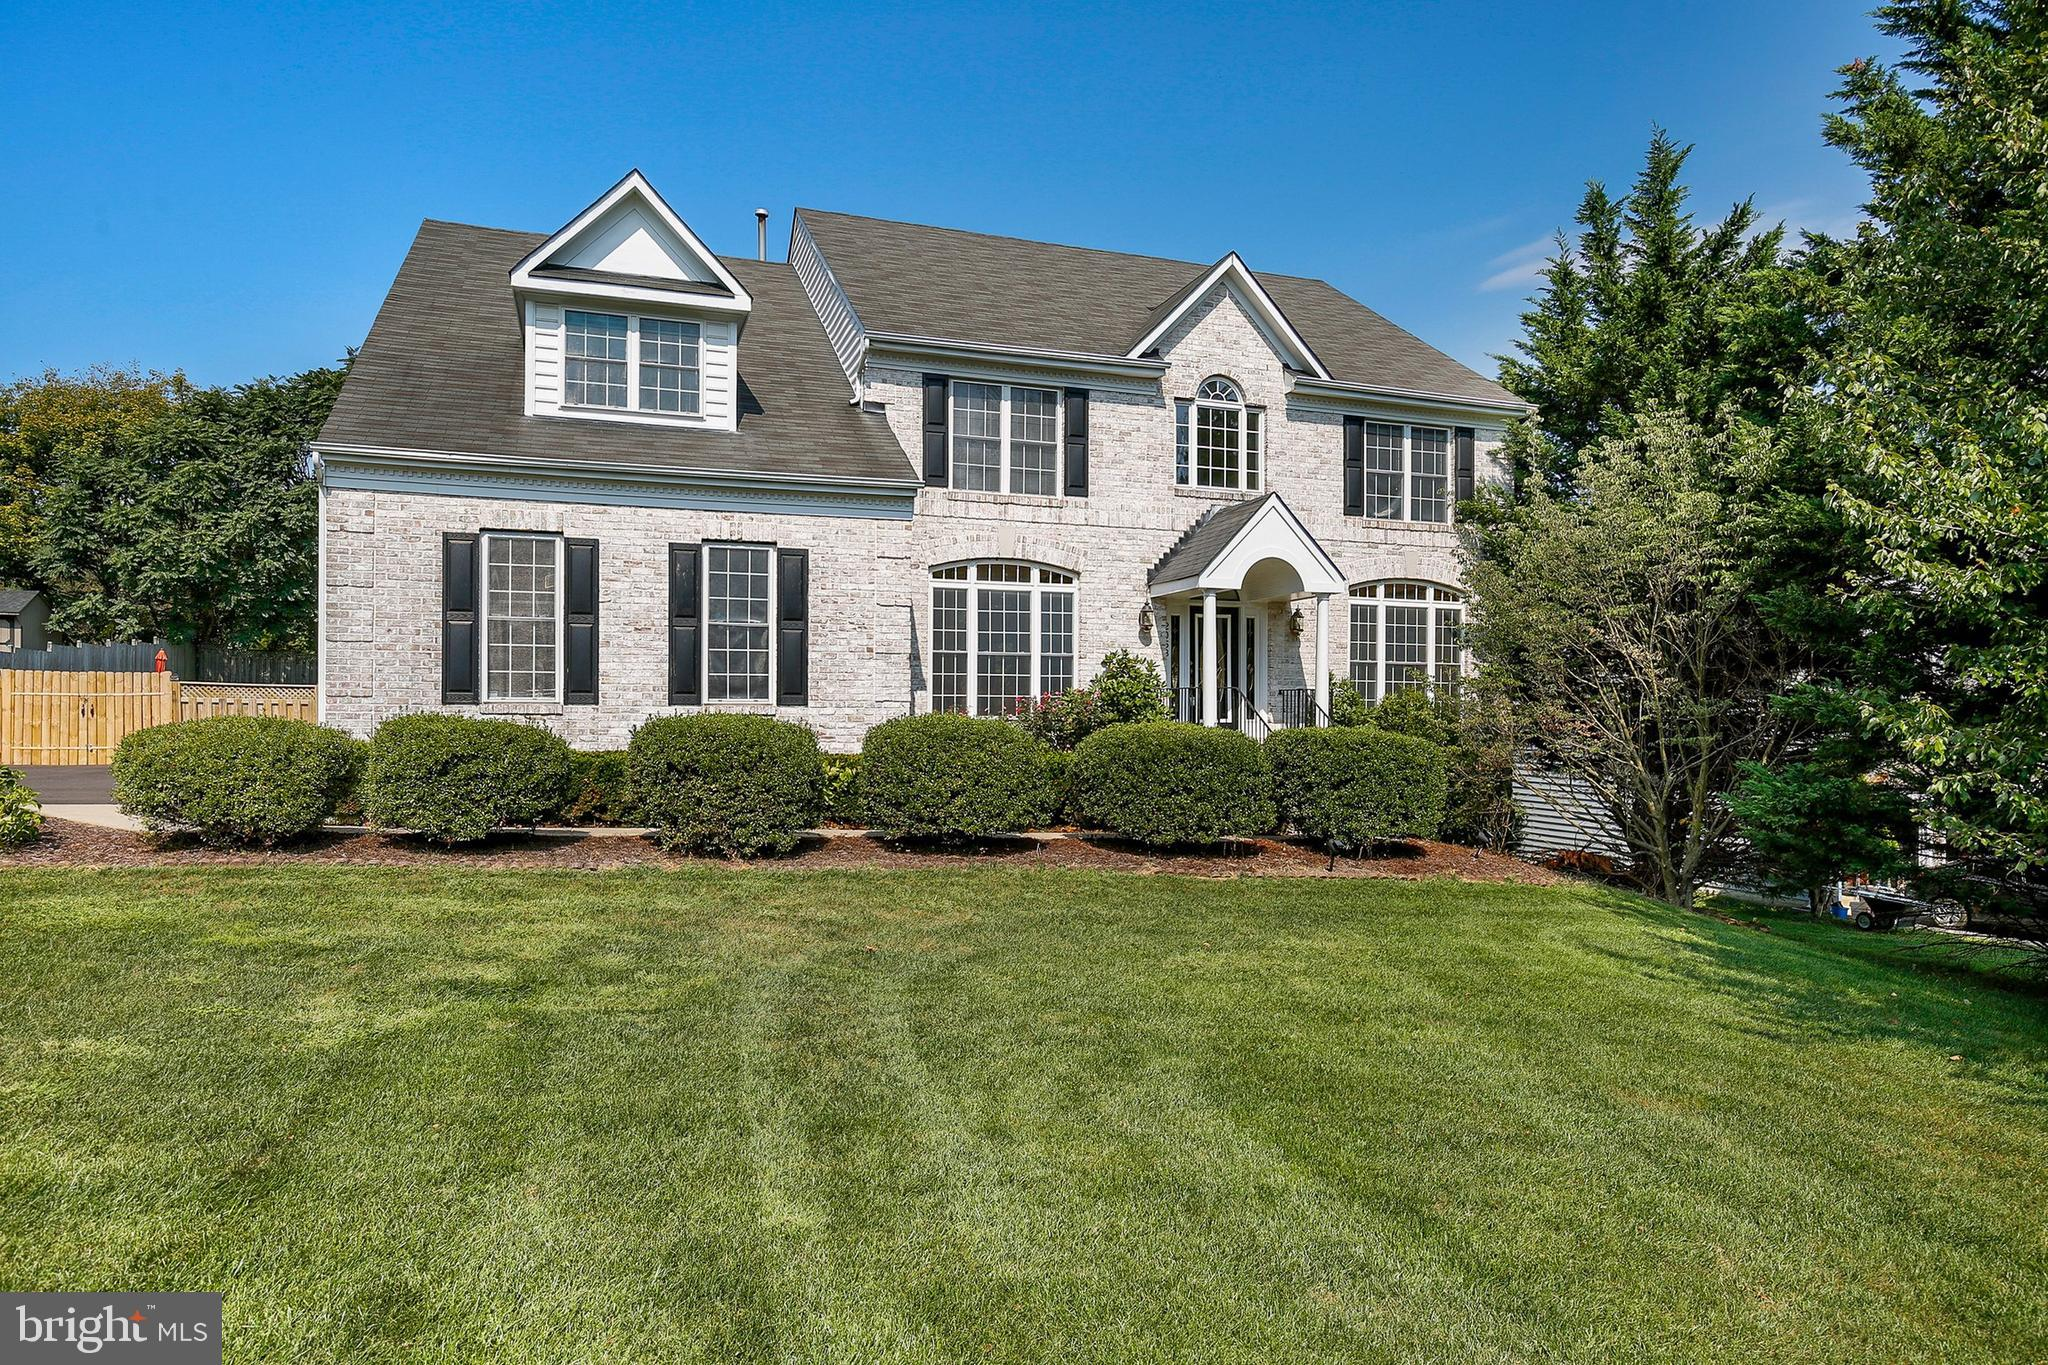 2058 SAINT JAMES ROAD, MARRIOTTSVILLE, MD 21104